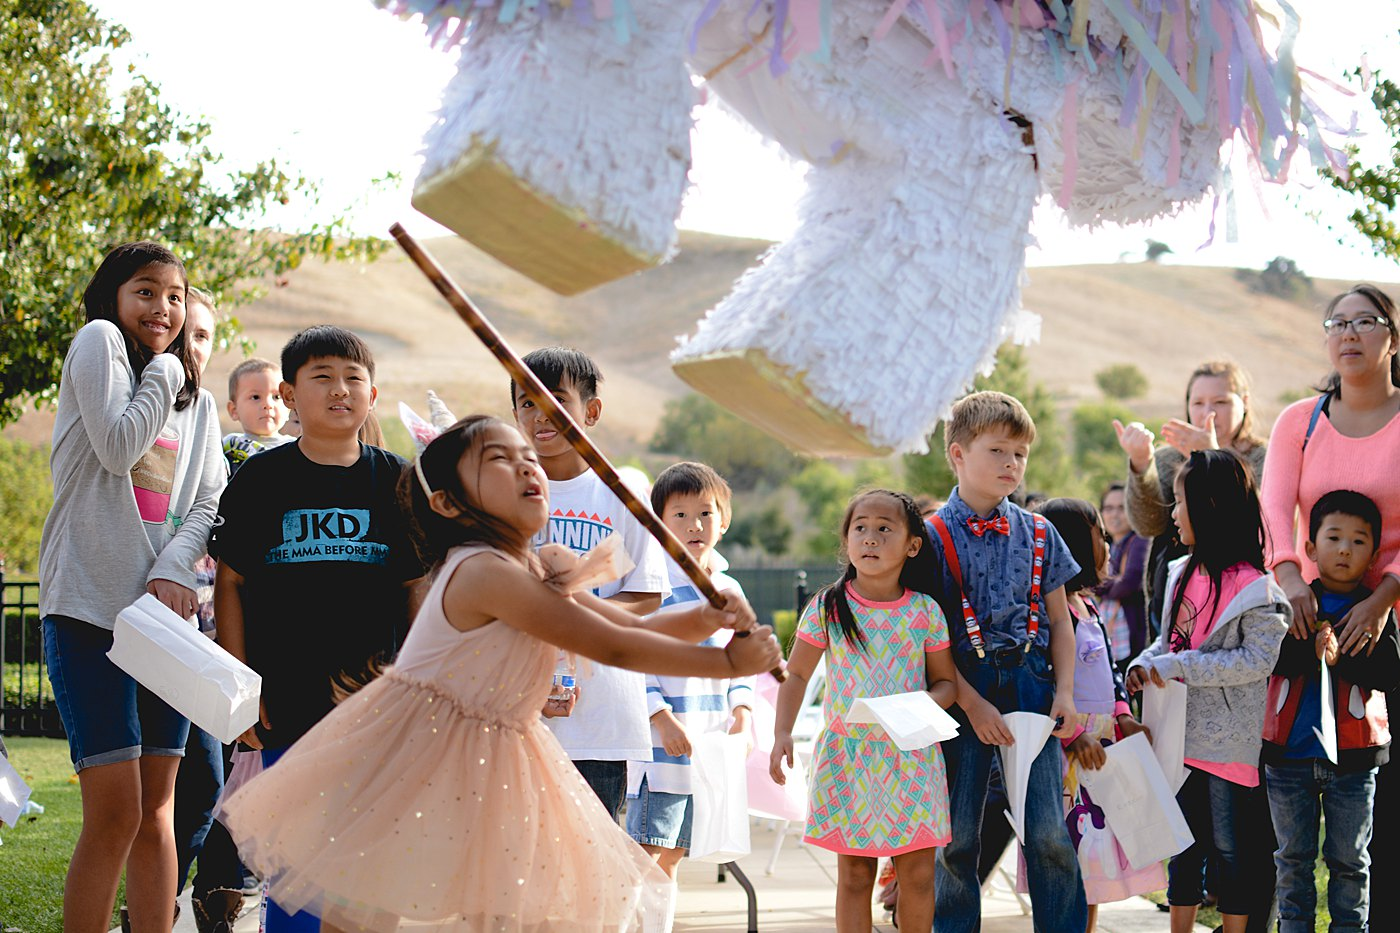 Unicorn birthday party vellano park chino hills captured grace by erin event photography